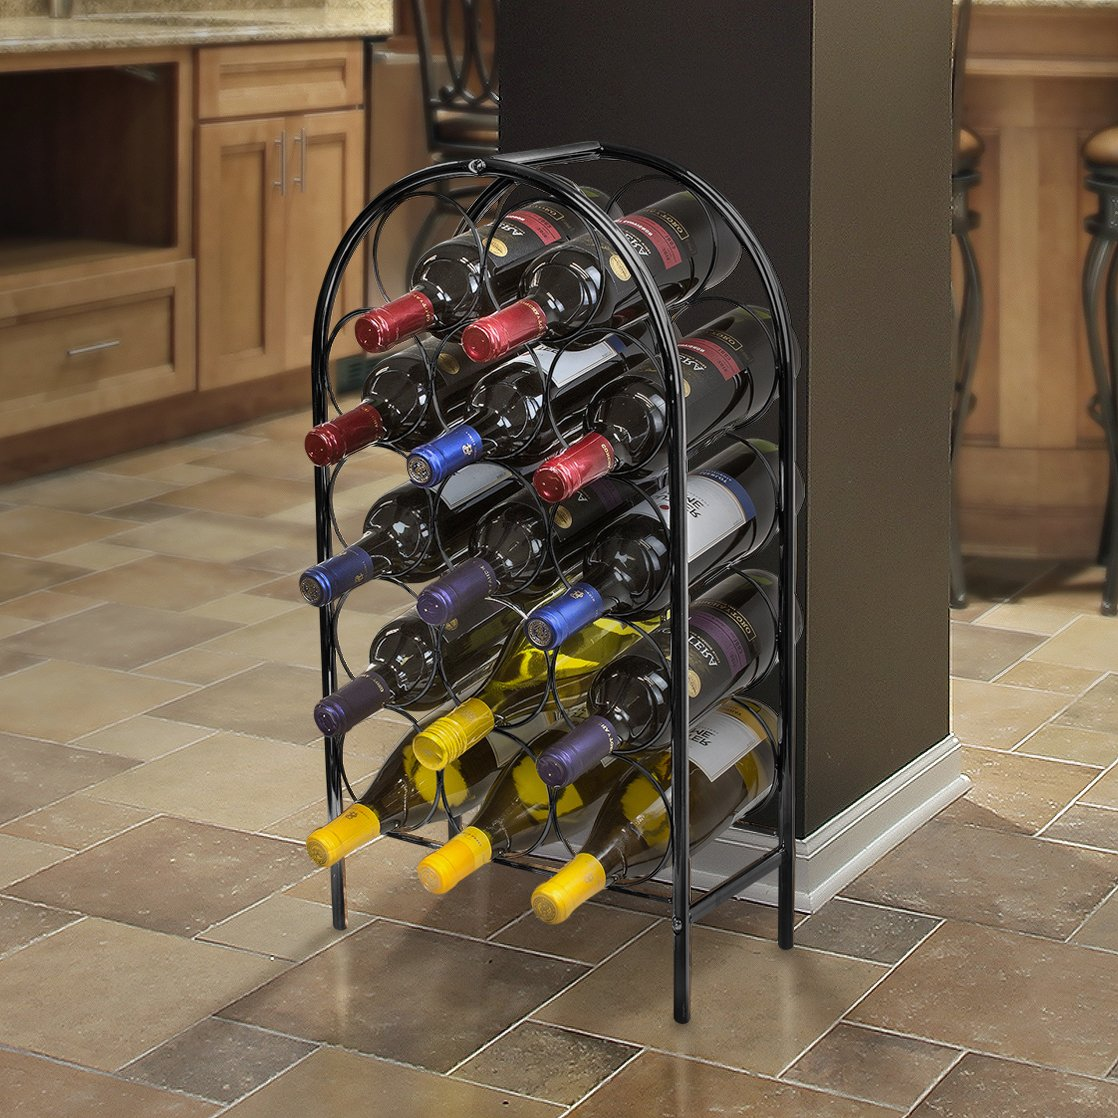 Sorbus Wine Rack Stand Bordeaux Chateau Style - Holds 14 Bottles of Your Favorite Wine - Elegant Storage for Kitchen, Dining Room, Bar, or Wine Cellar (14 Bottle - Black) by Sorbus (Image #5)